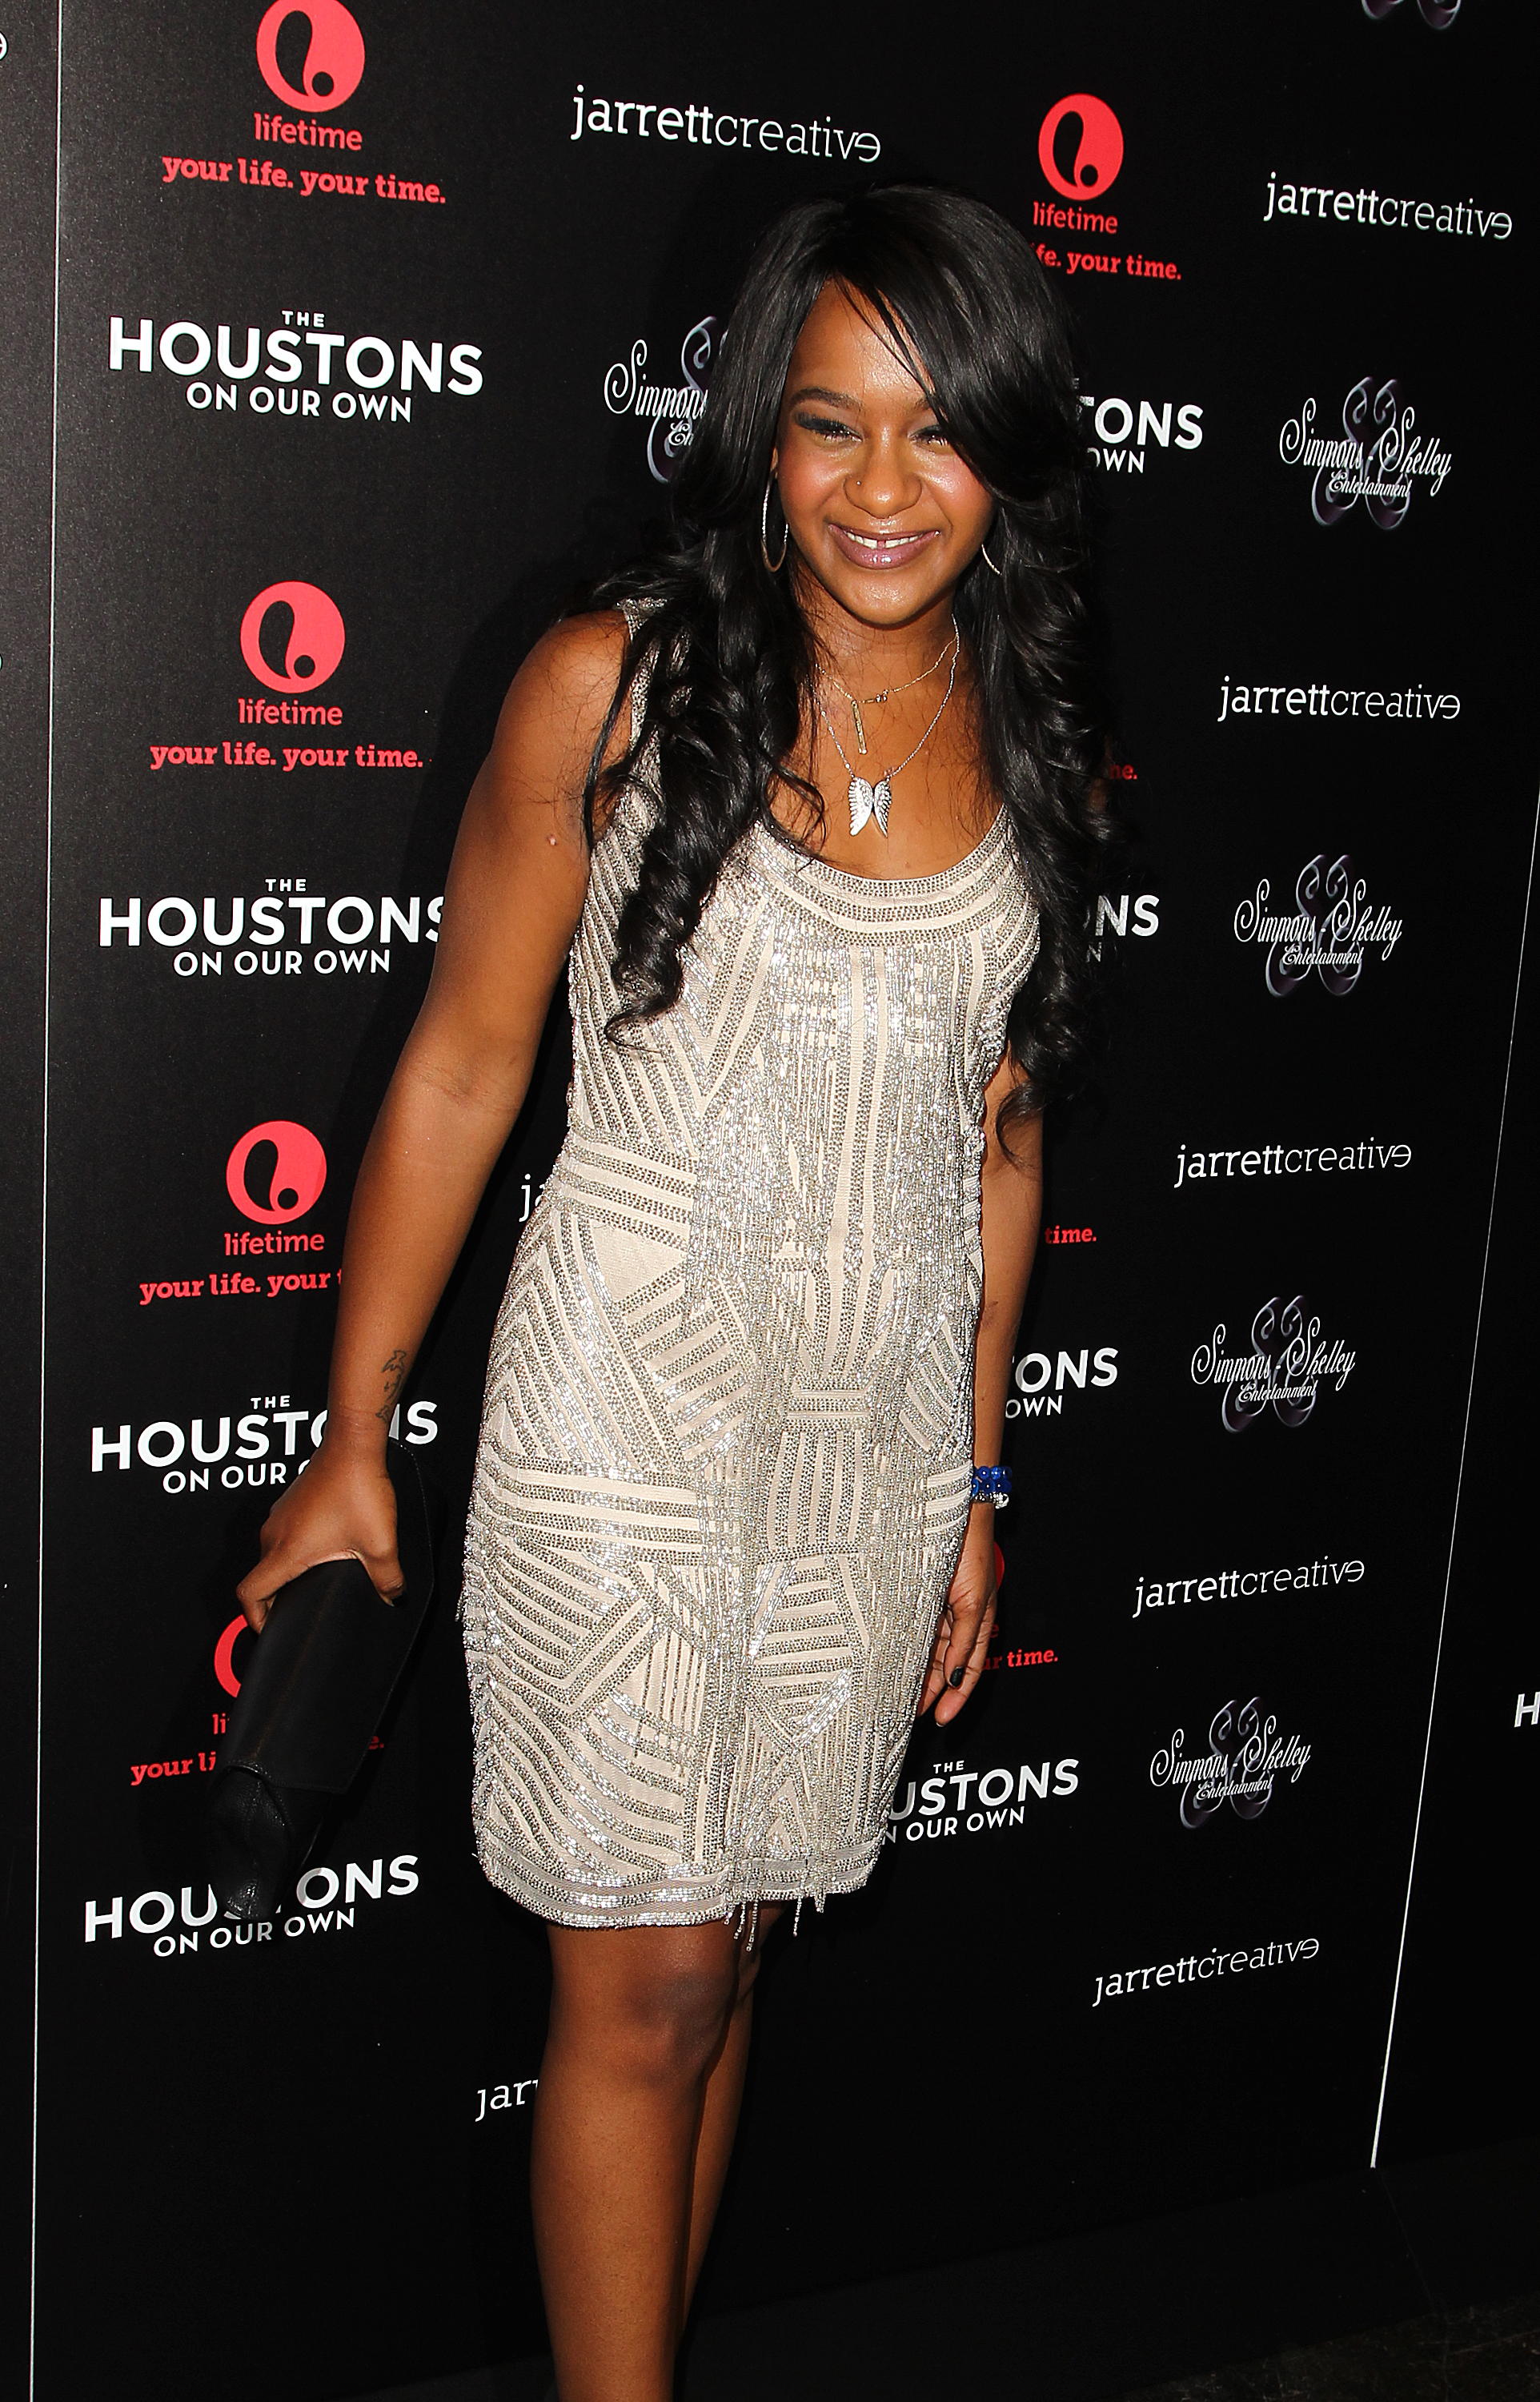 Bobbi Kristina Brown attends the premiere party for  The Houstons On Our Own  in New York City on Oct. 22, 2012.